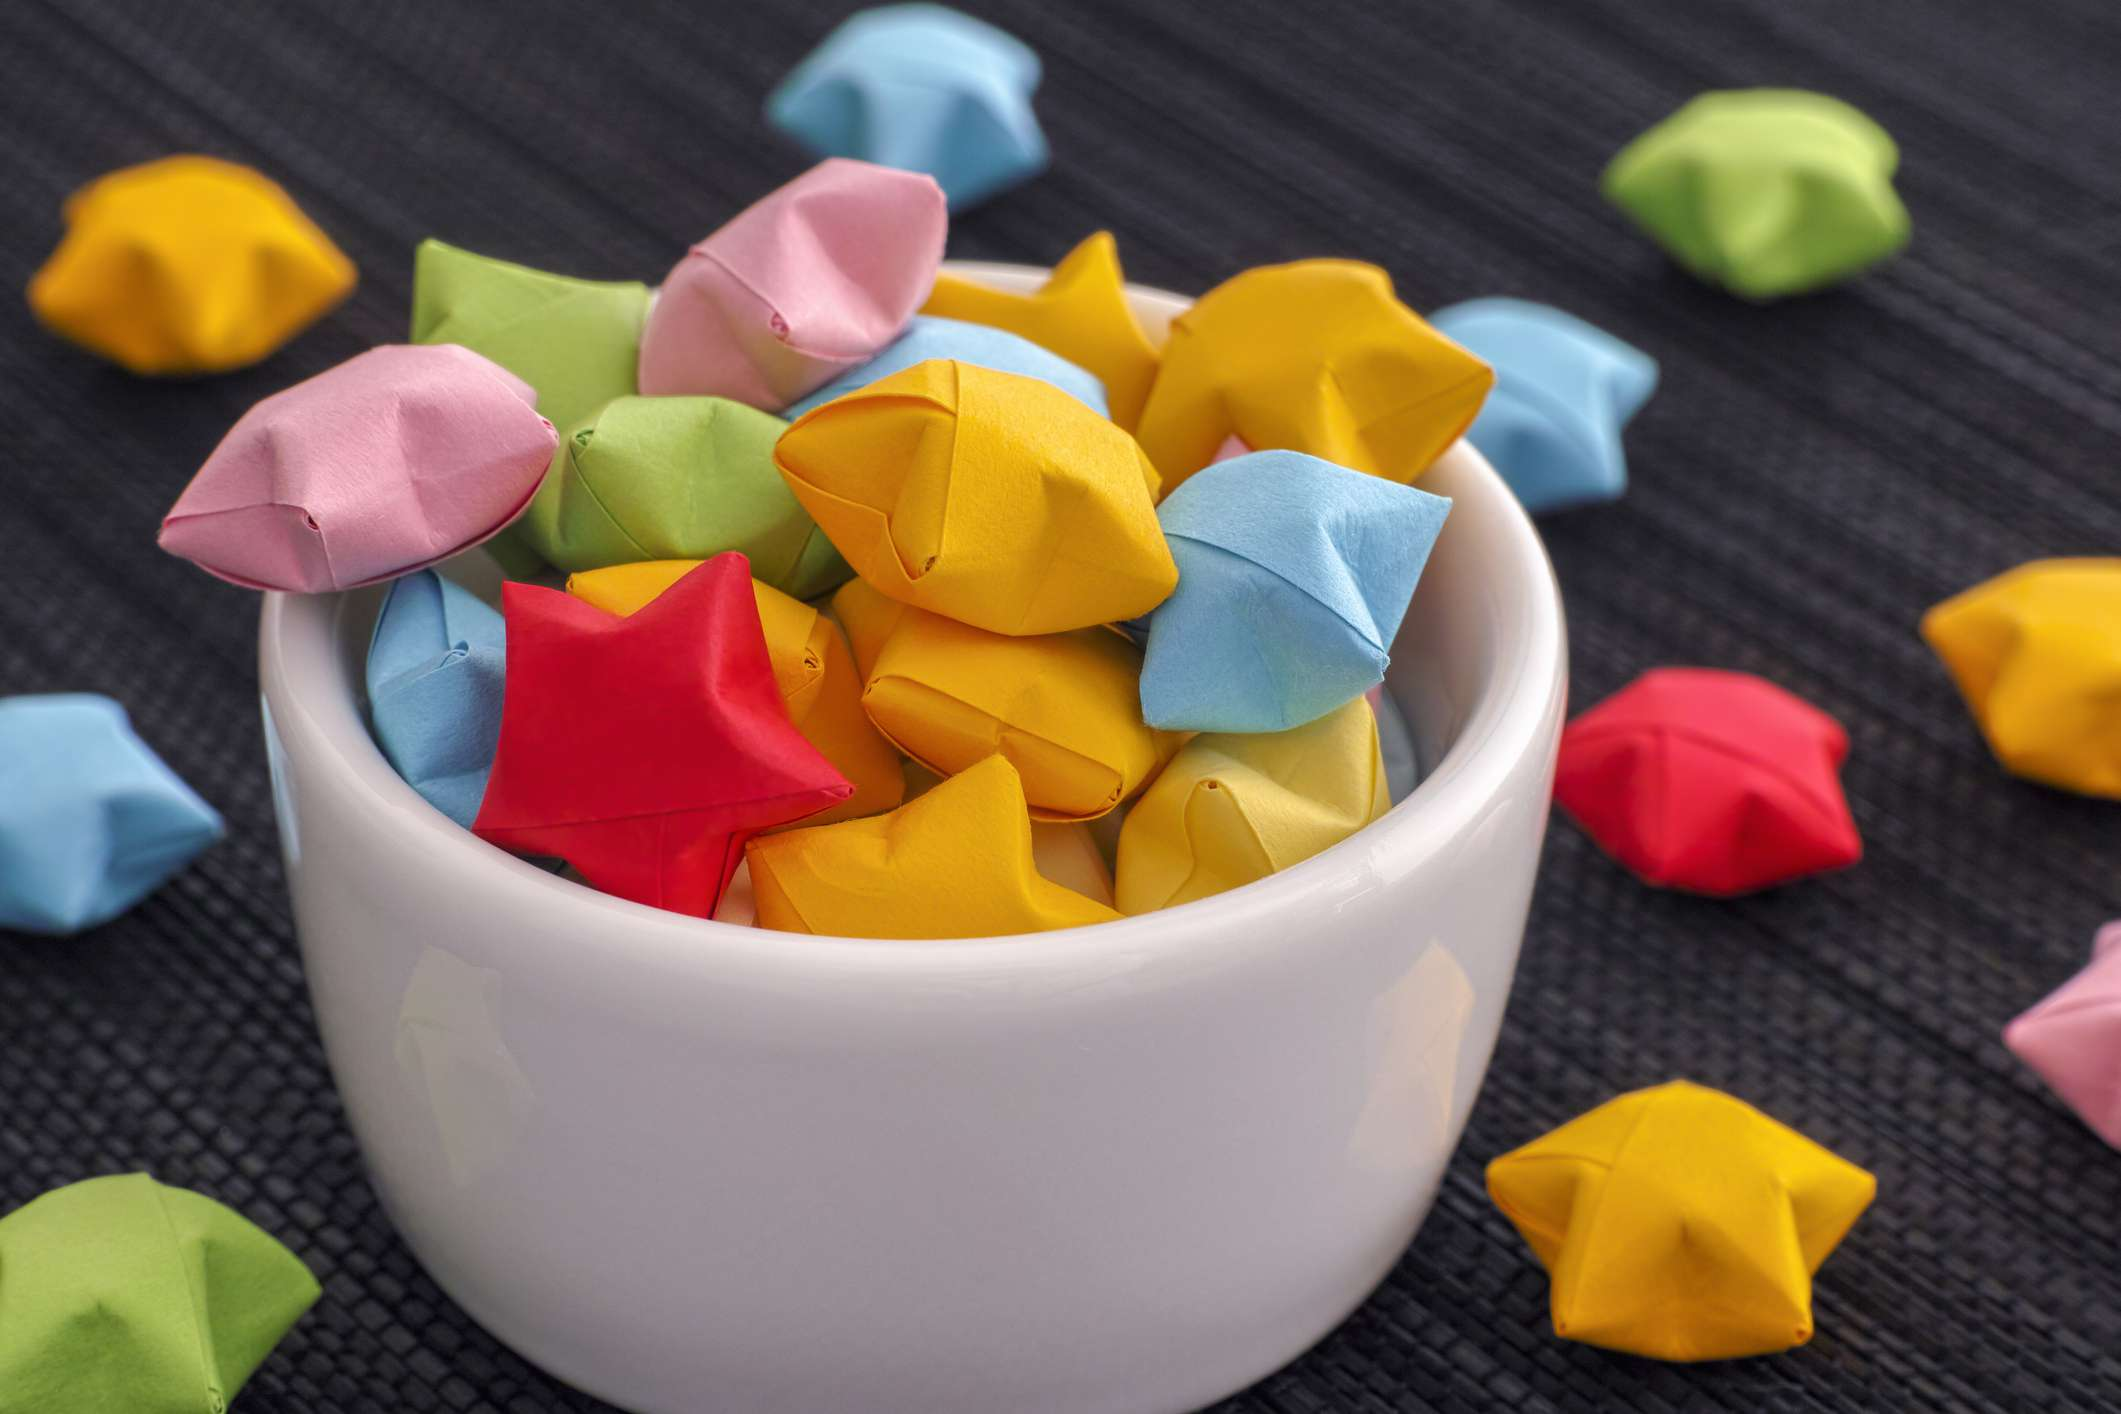 Origami lucky stars spilling out of glass bowl